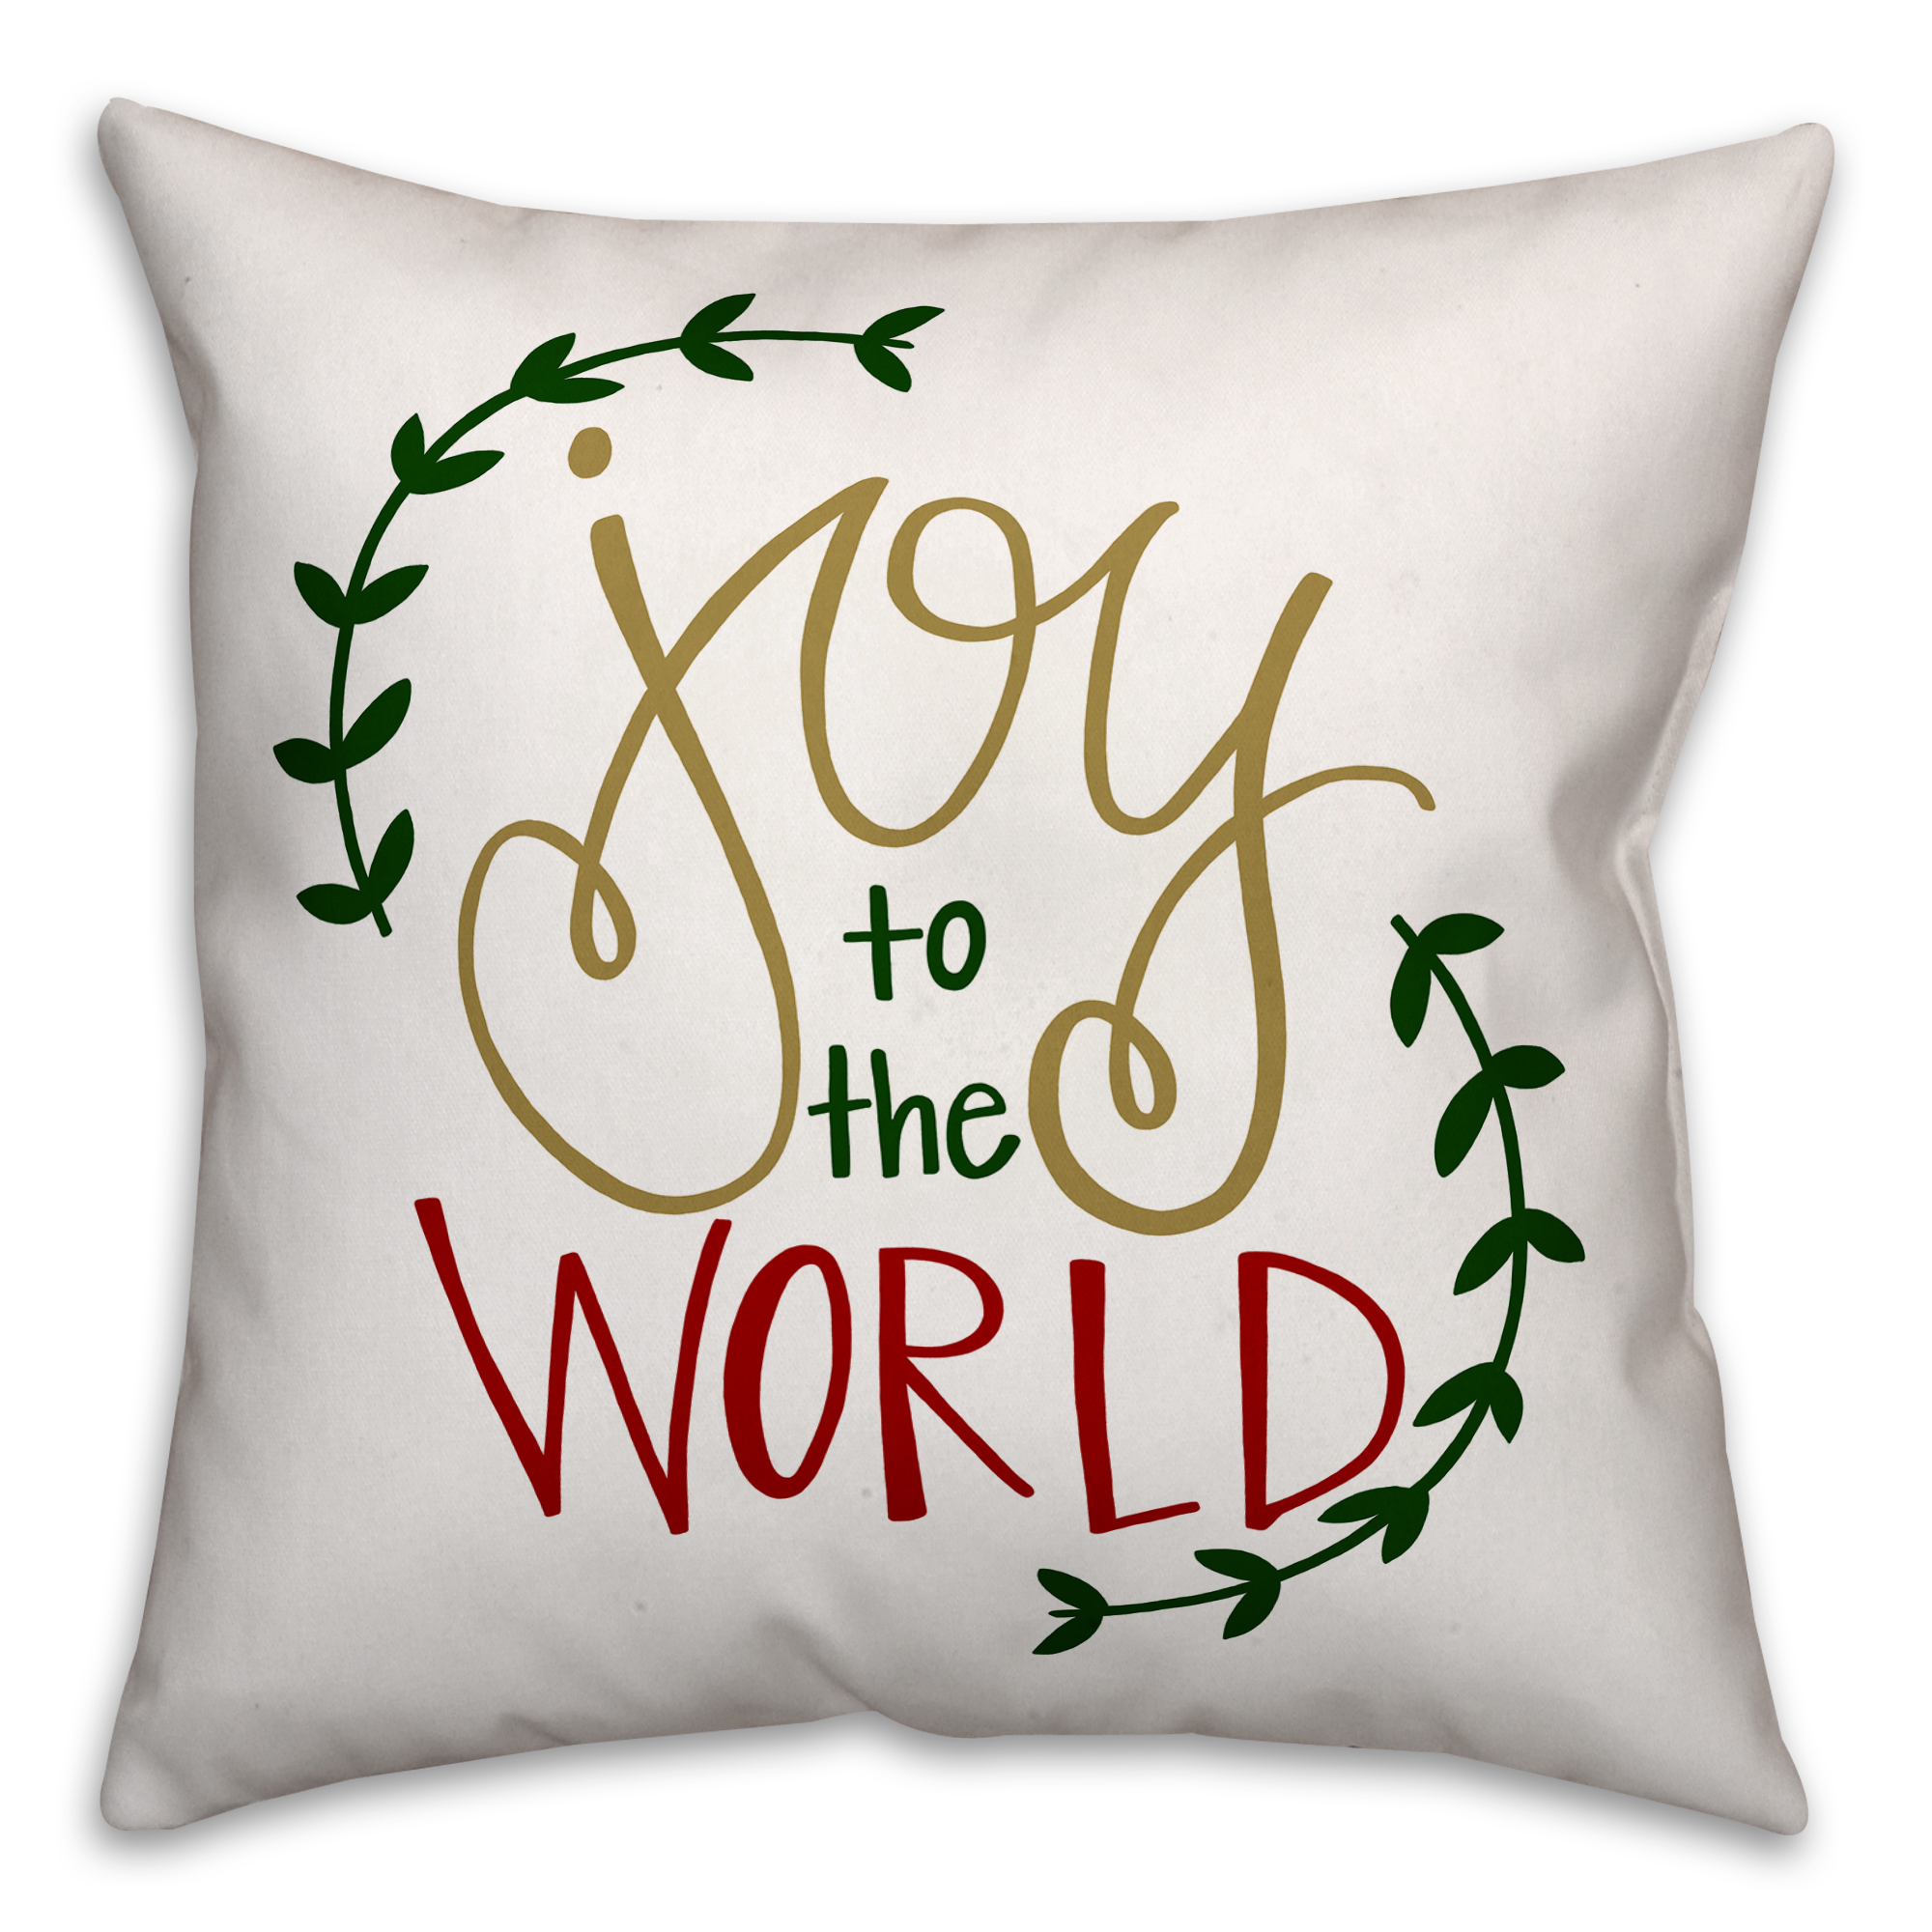 Joy to the World 20x20 Spun Poly Pillow Cover